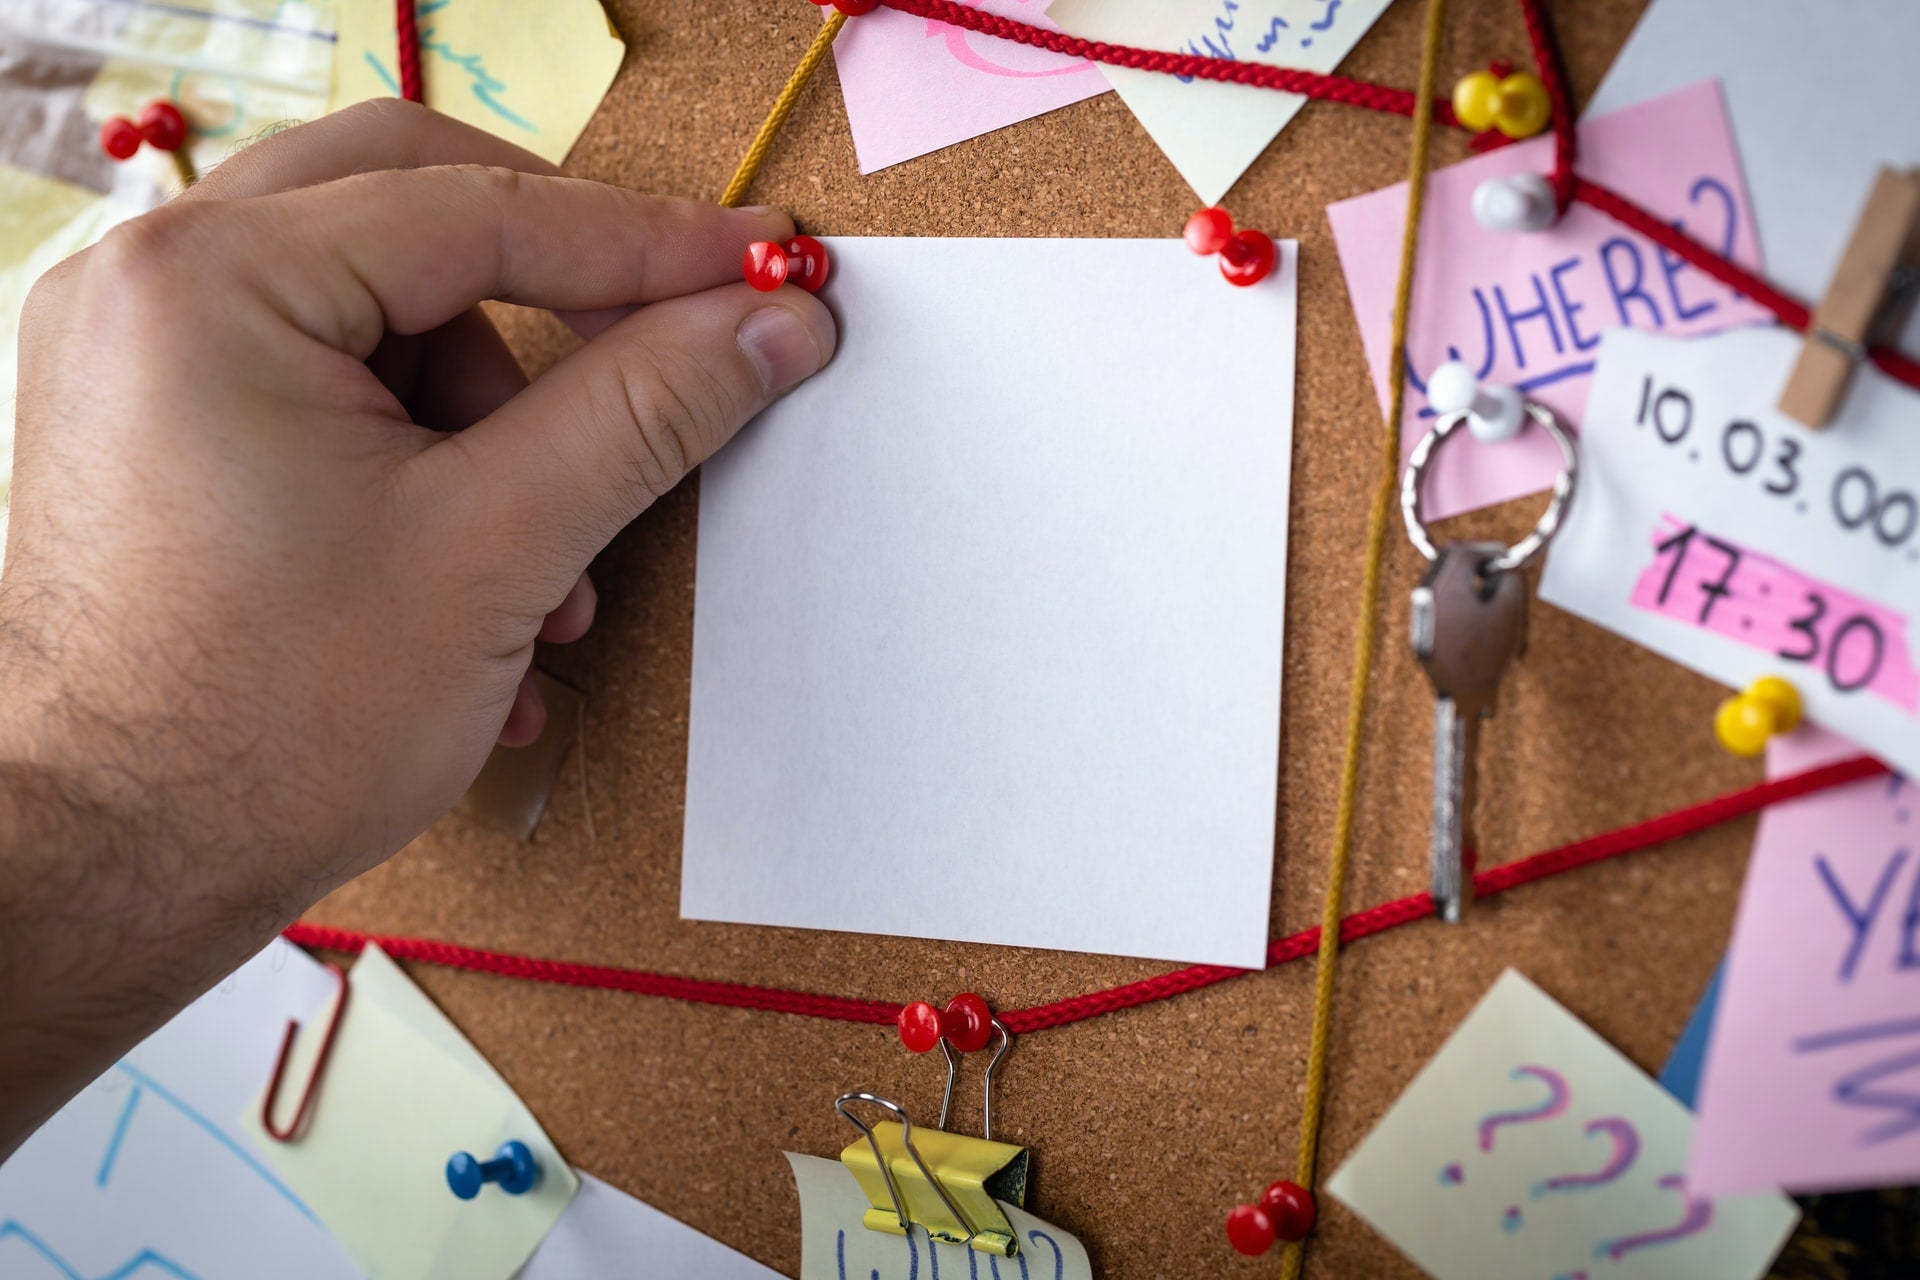 A picture of a hand pinning a post-it to a detective board. Lots of other notes are pinned around it, and red string is pinned in such a way it connects some notes